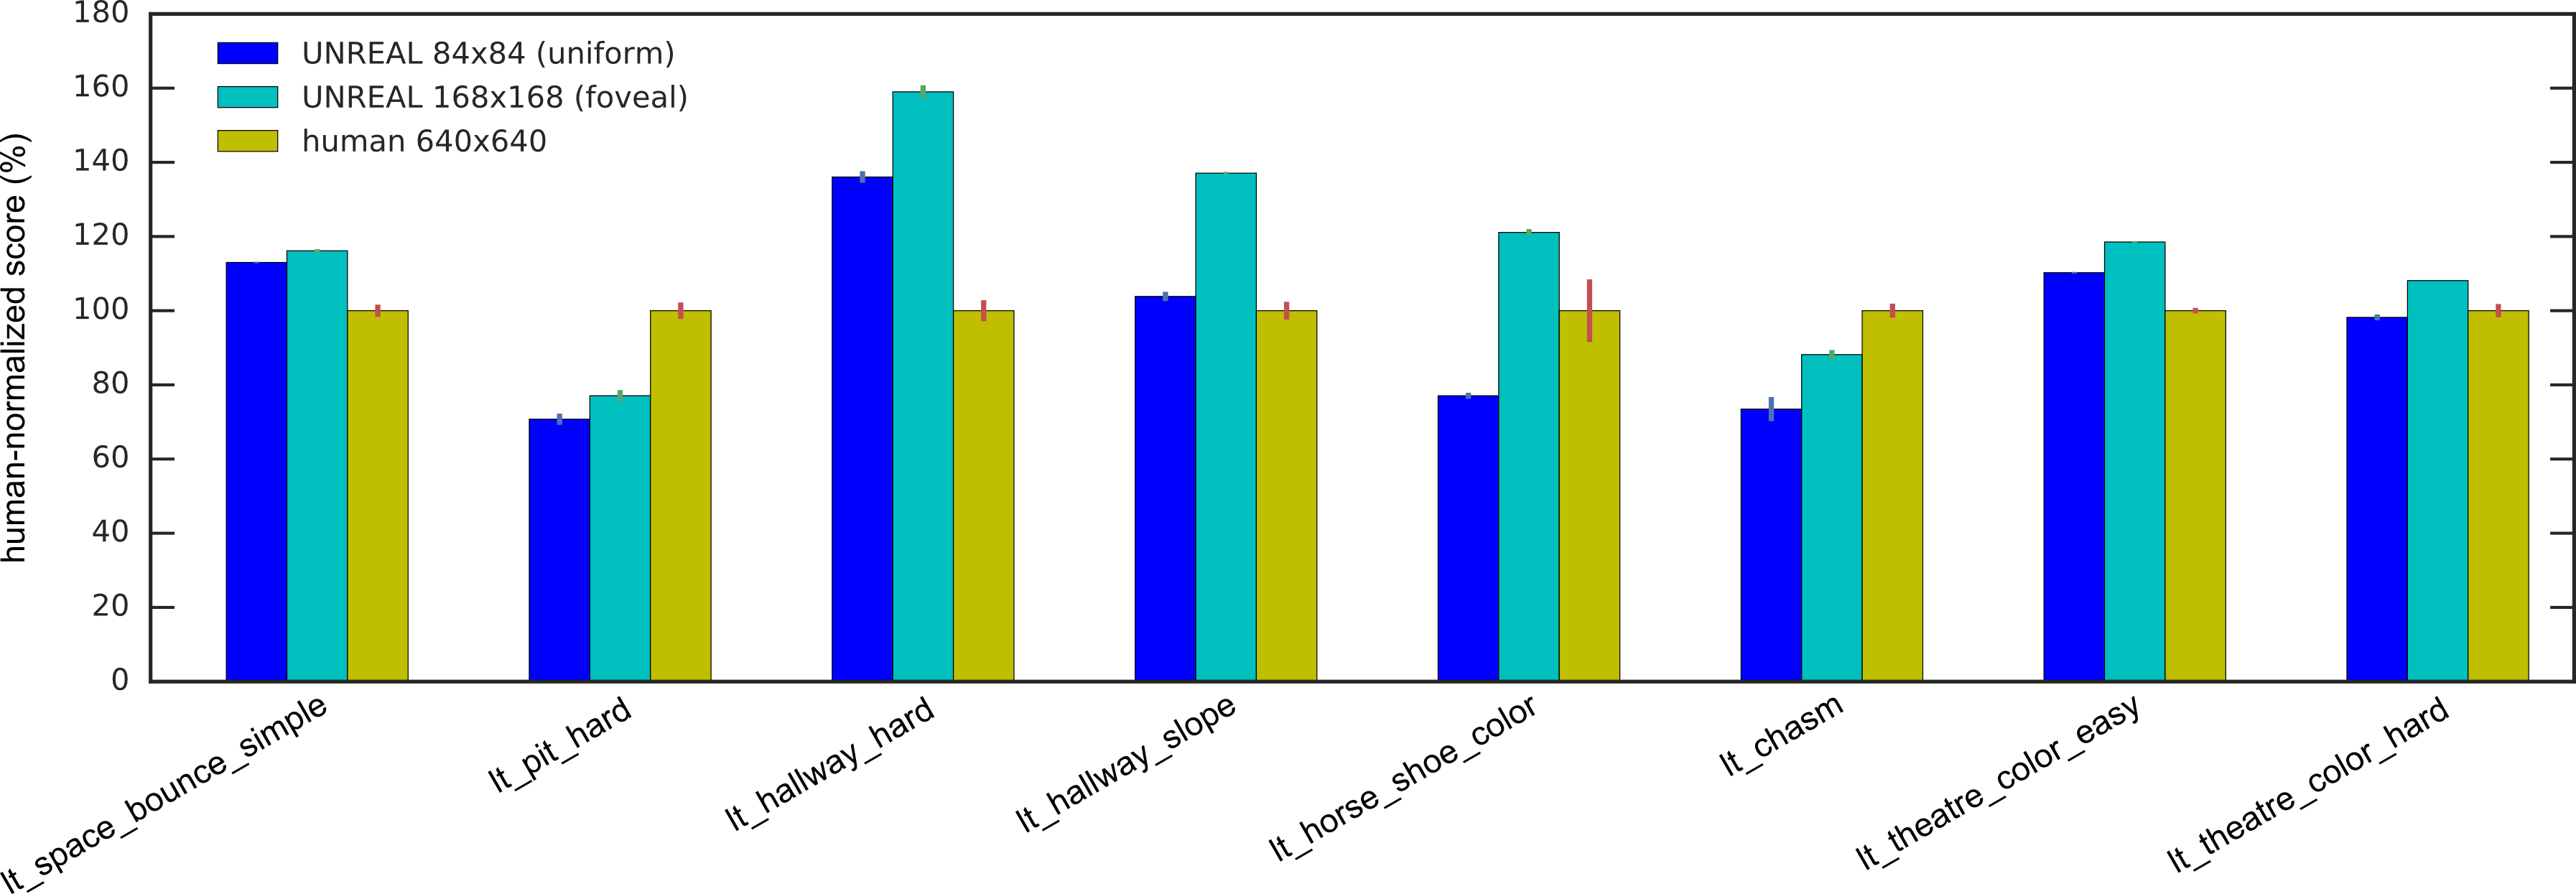 Laser tag: bar graph comparing UNREAL performance with and without fovea to human level. The foveated UNREAL agent outperforms the unfoveated agent in all levels.